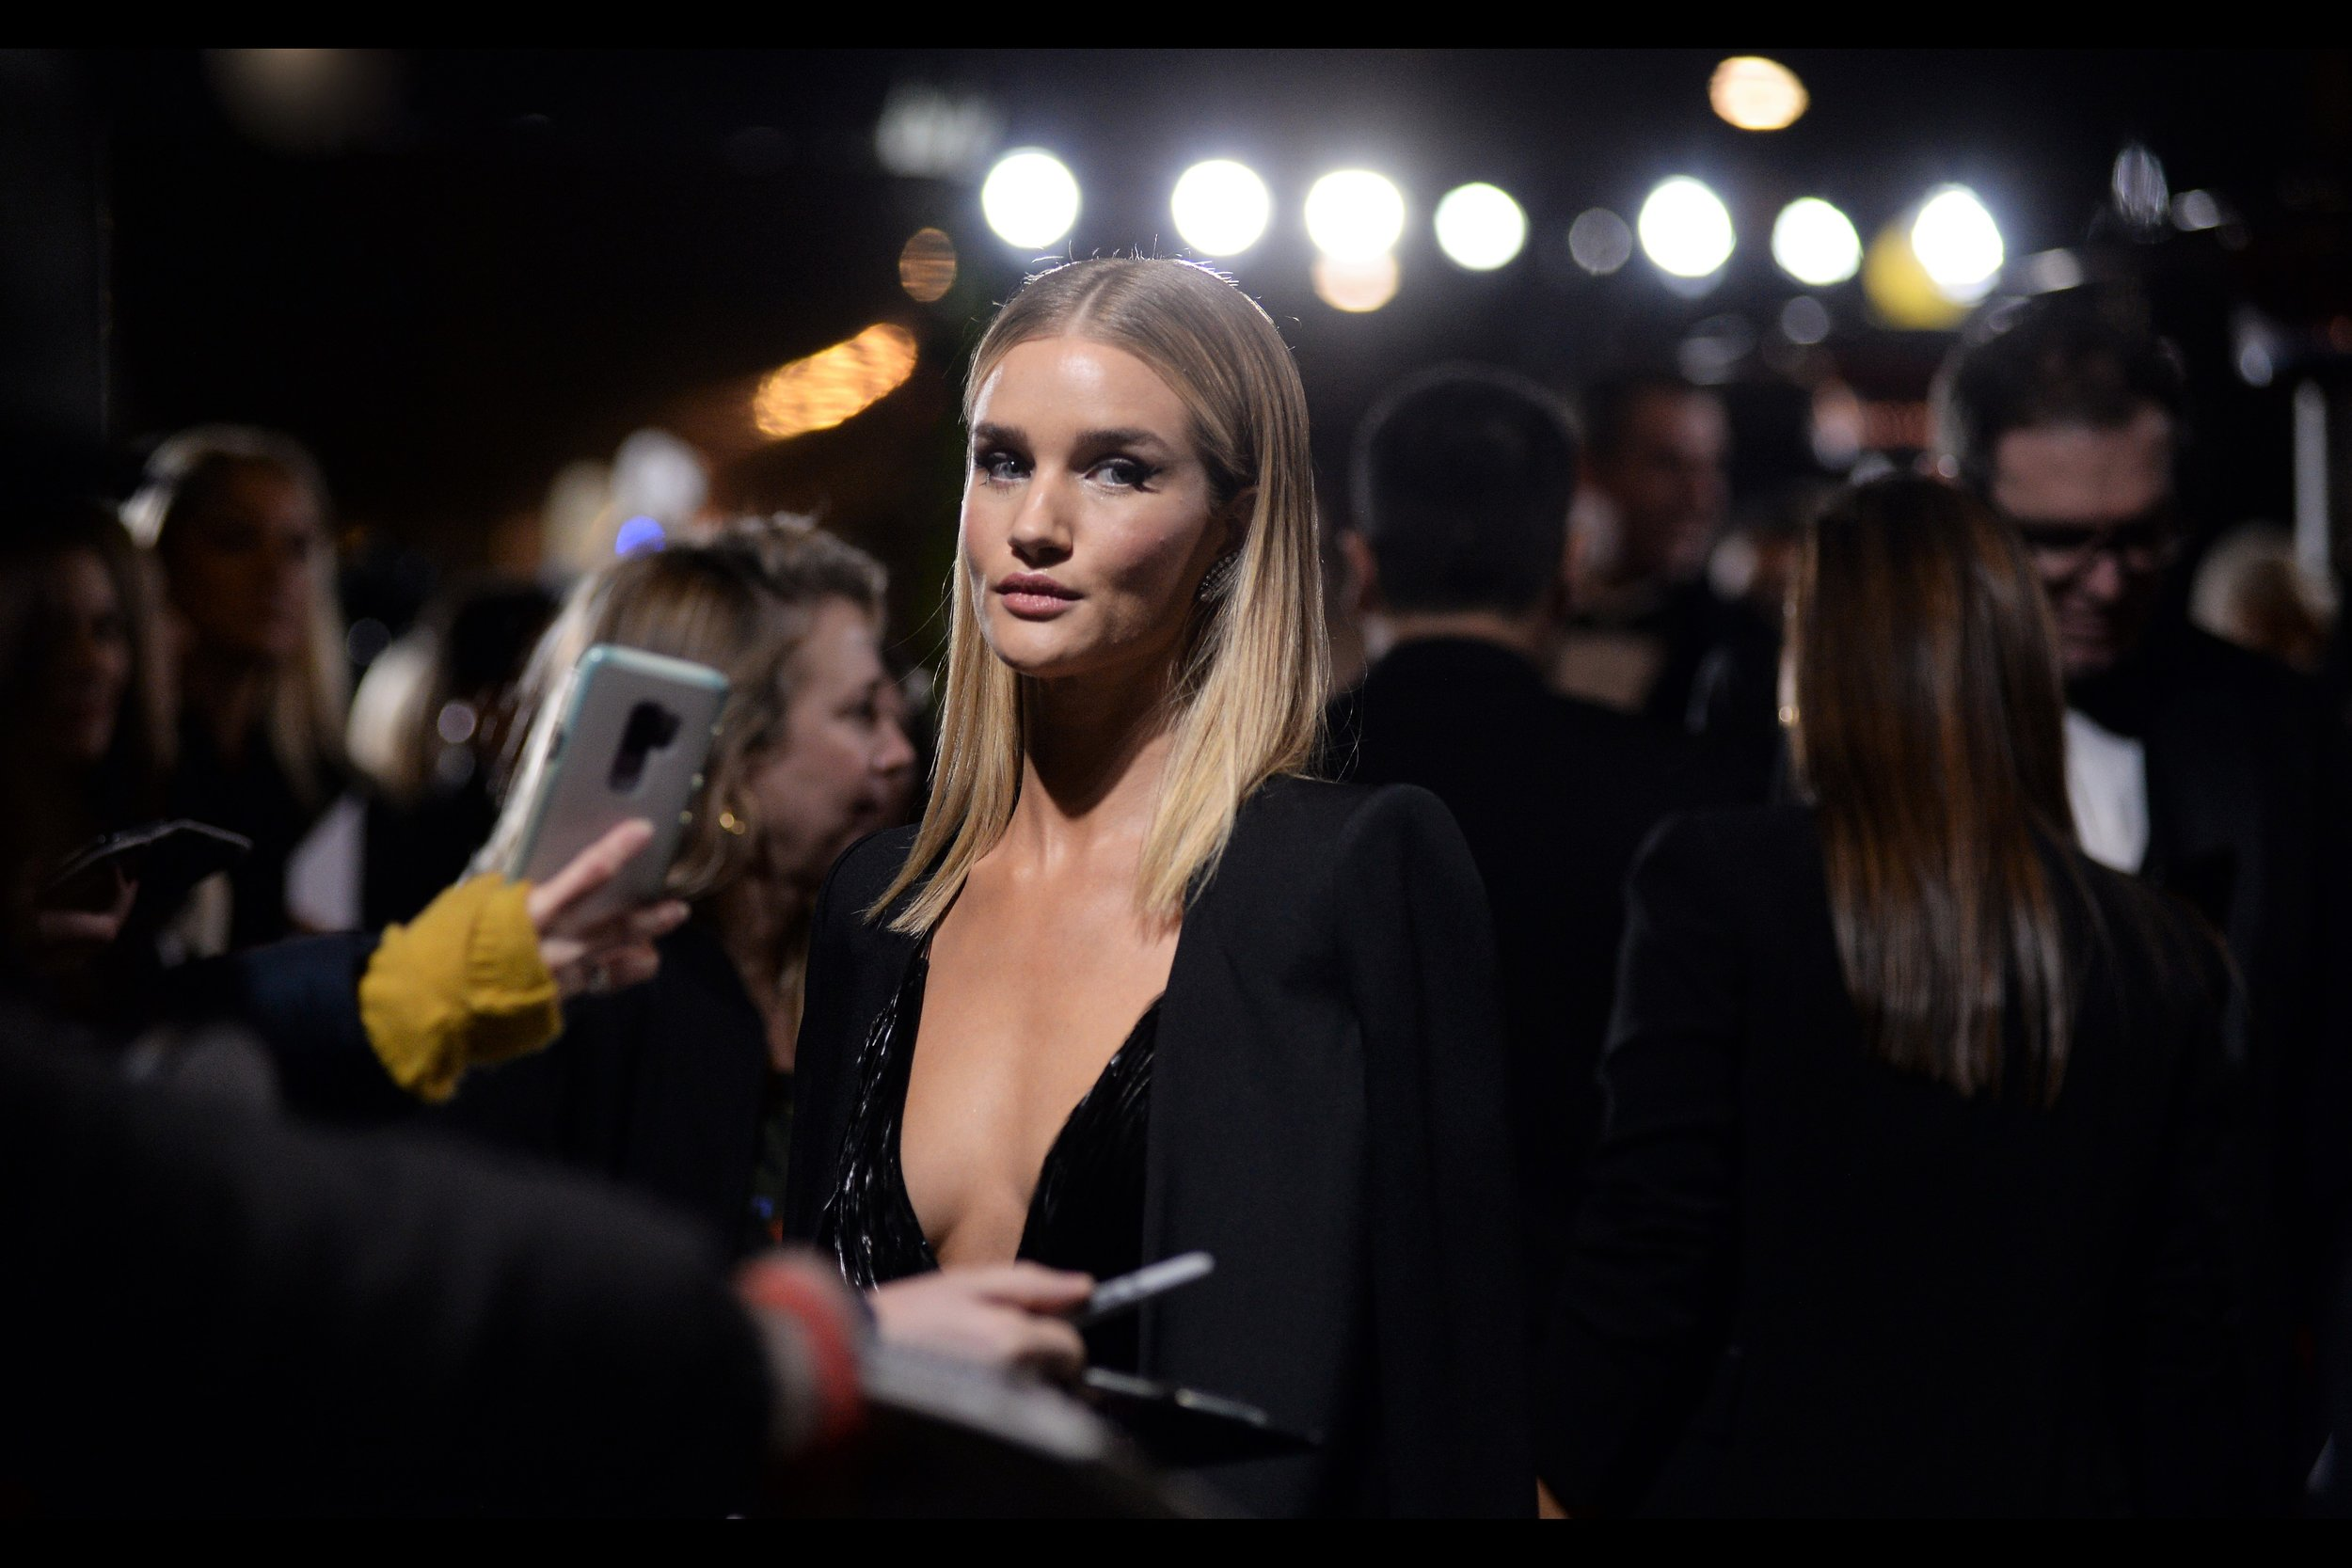 """You don't… want my autograph, do you?""  - sadly I have two cameras on me (three if you count the GoPro) (four if you count the mobile phone), and can't put either down to grab an autograph from Rosie Huntington-Whitely."